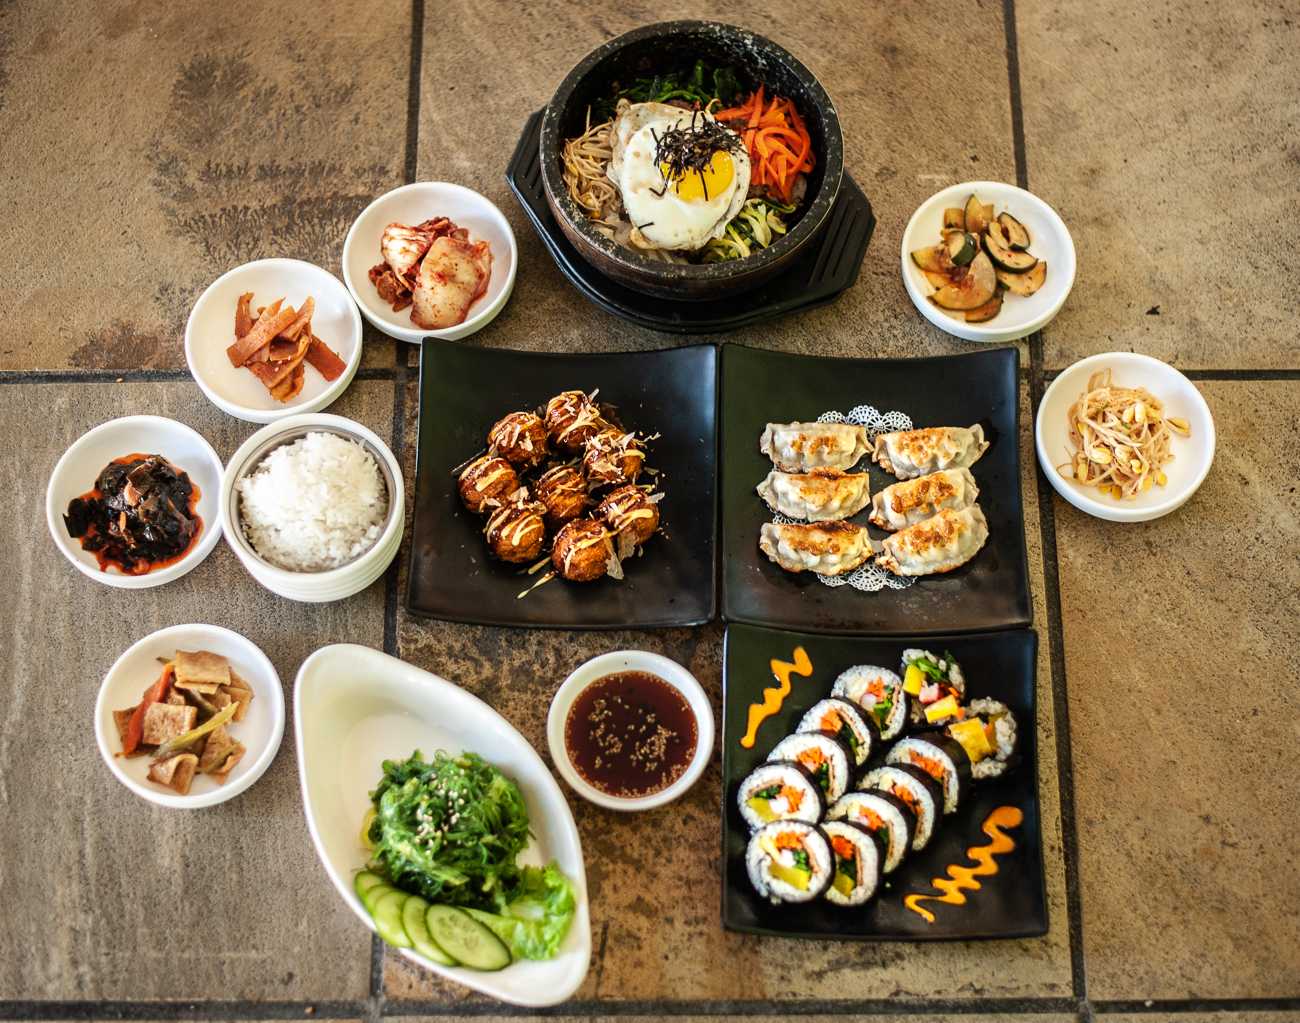 "Korealistic is an authentic Korean restaurant owned and operated by a mother-daughter duo. The eatery specializes in healthy, home-style Korean cooking with a variety of traditional dishes. Situated in a West Chester strip mall, they've been serving patrons since January 2015. Dine-in service is available, or you can call (513) 306-5360 to place an order with curbside pickup. Visit their{&nbsp;}<a  href=""https://www.gokorealistic.com/"" target=""_blank"" title=""https://www.gokorealistic.com/"">website{&nbsp;}</a>to see a full menu of their offerings. ADDRESS: 7735 Cox Lane (45069) / Image: Kellie Coleman // Published: 12.29.20"